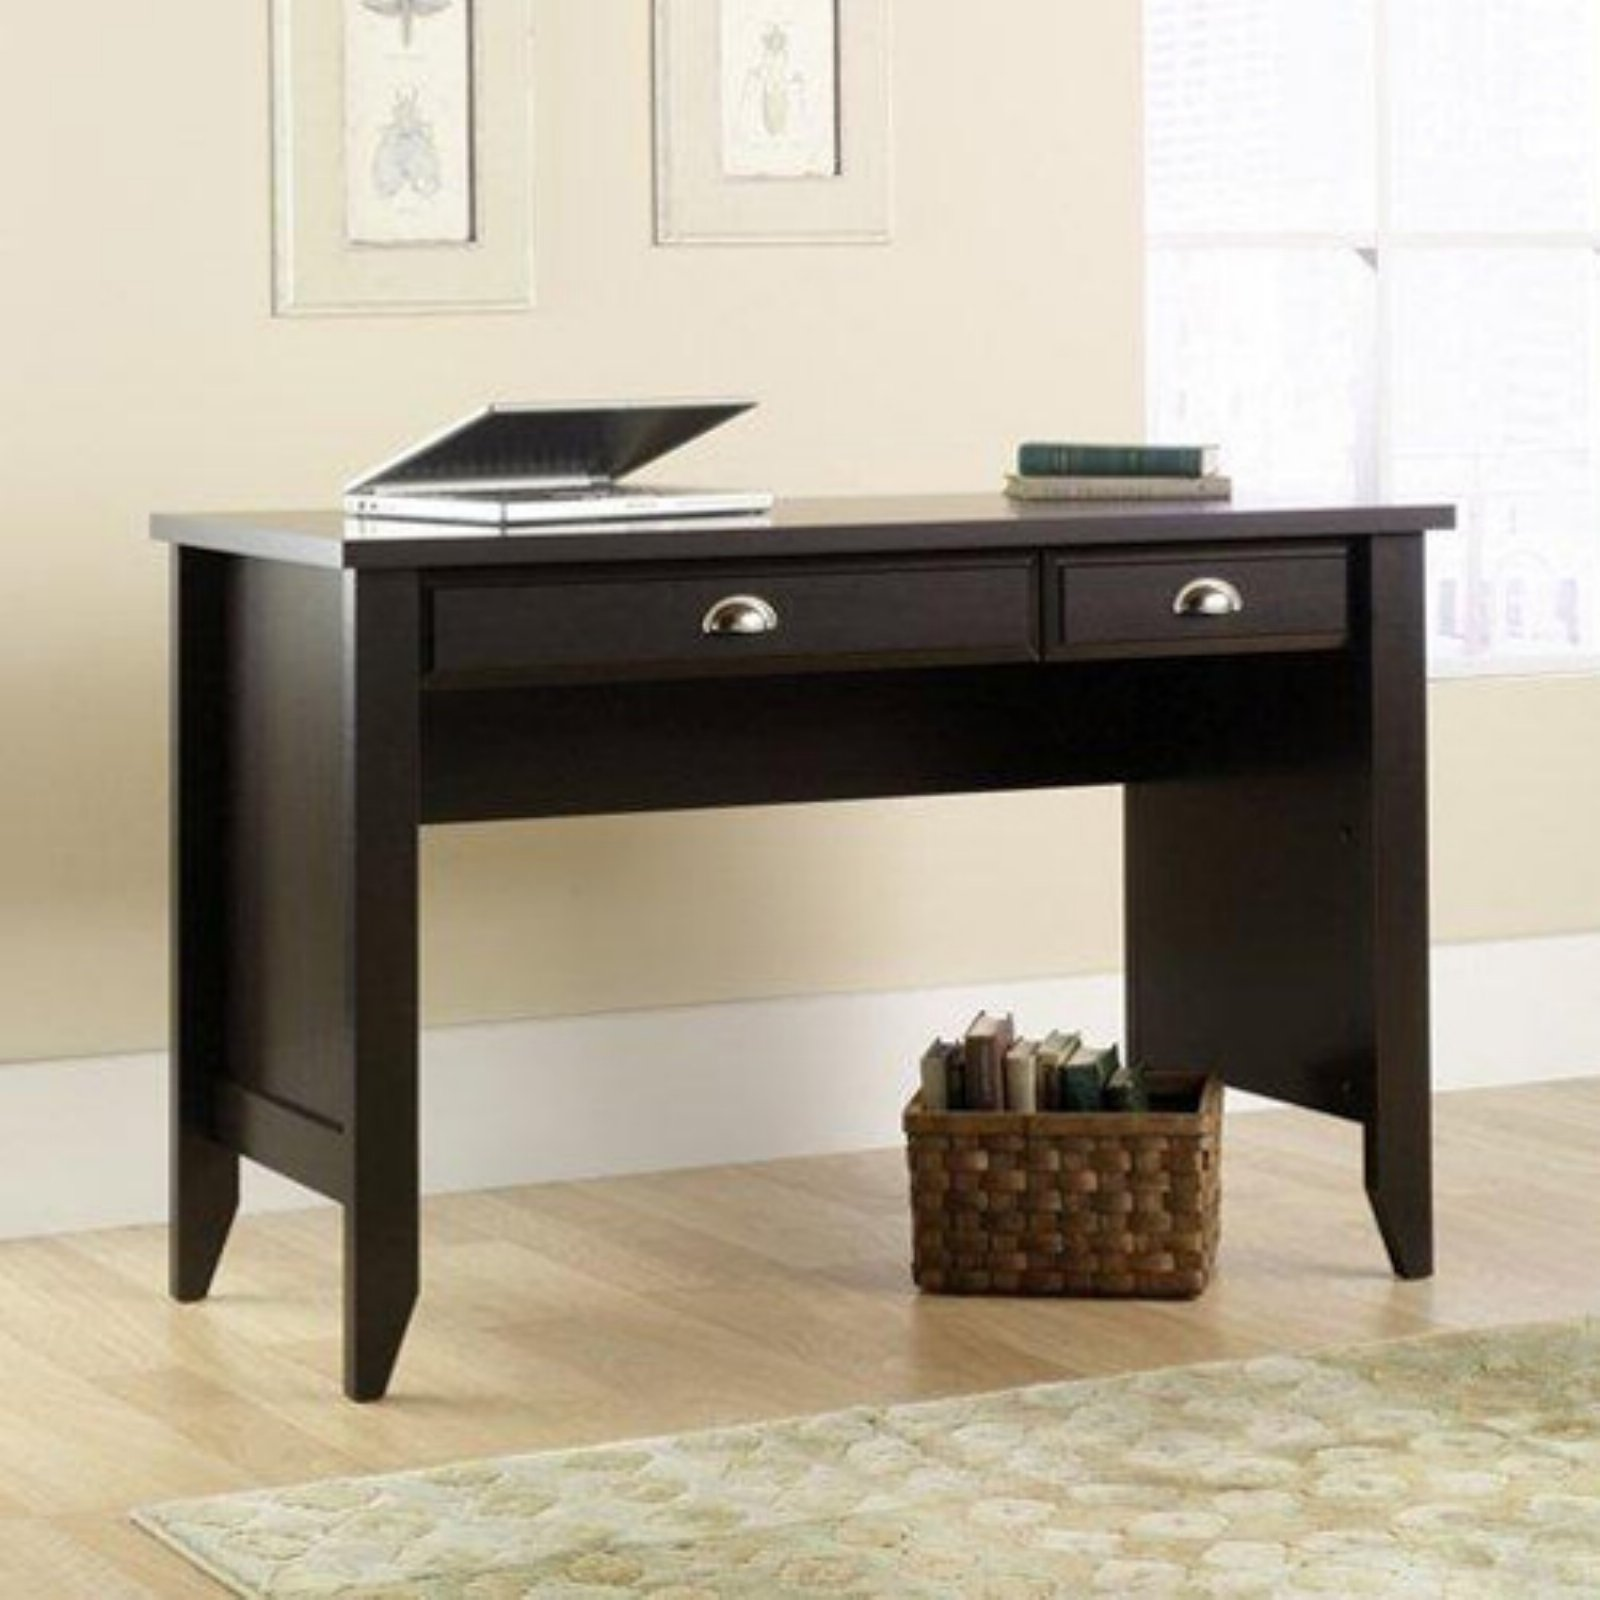 Sauder Shoal Creek Desk - Jamocha Wood